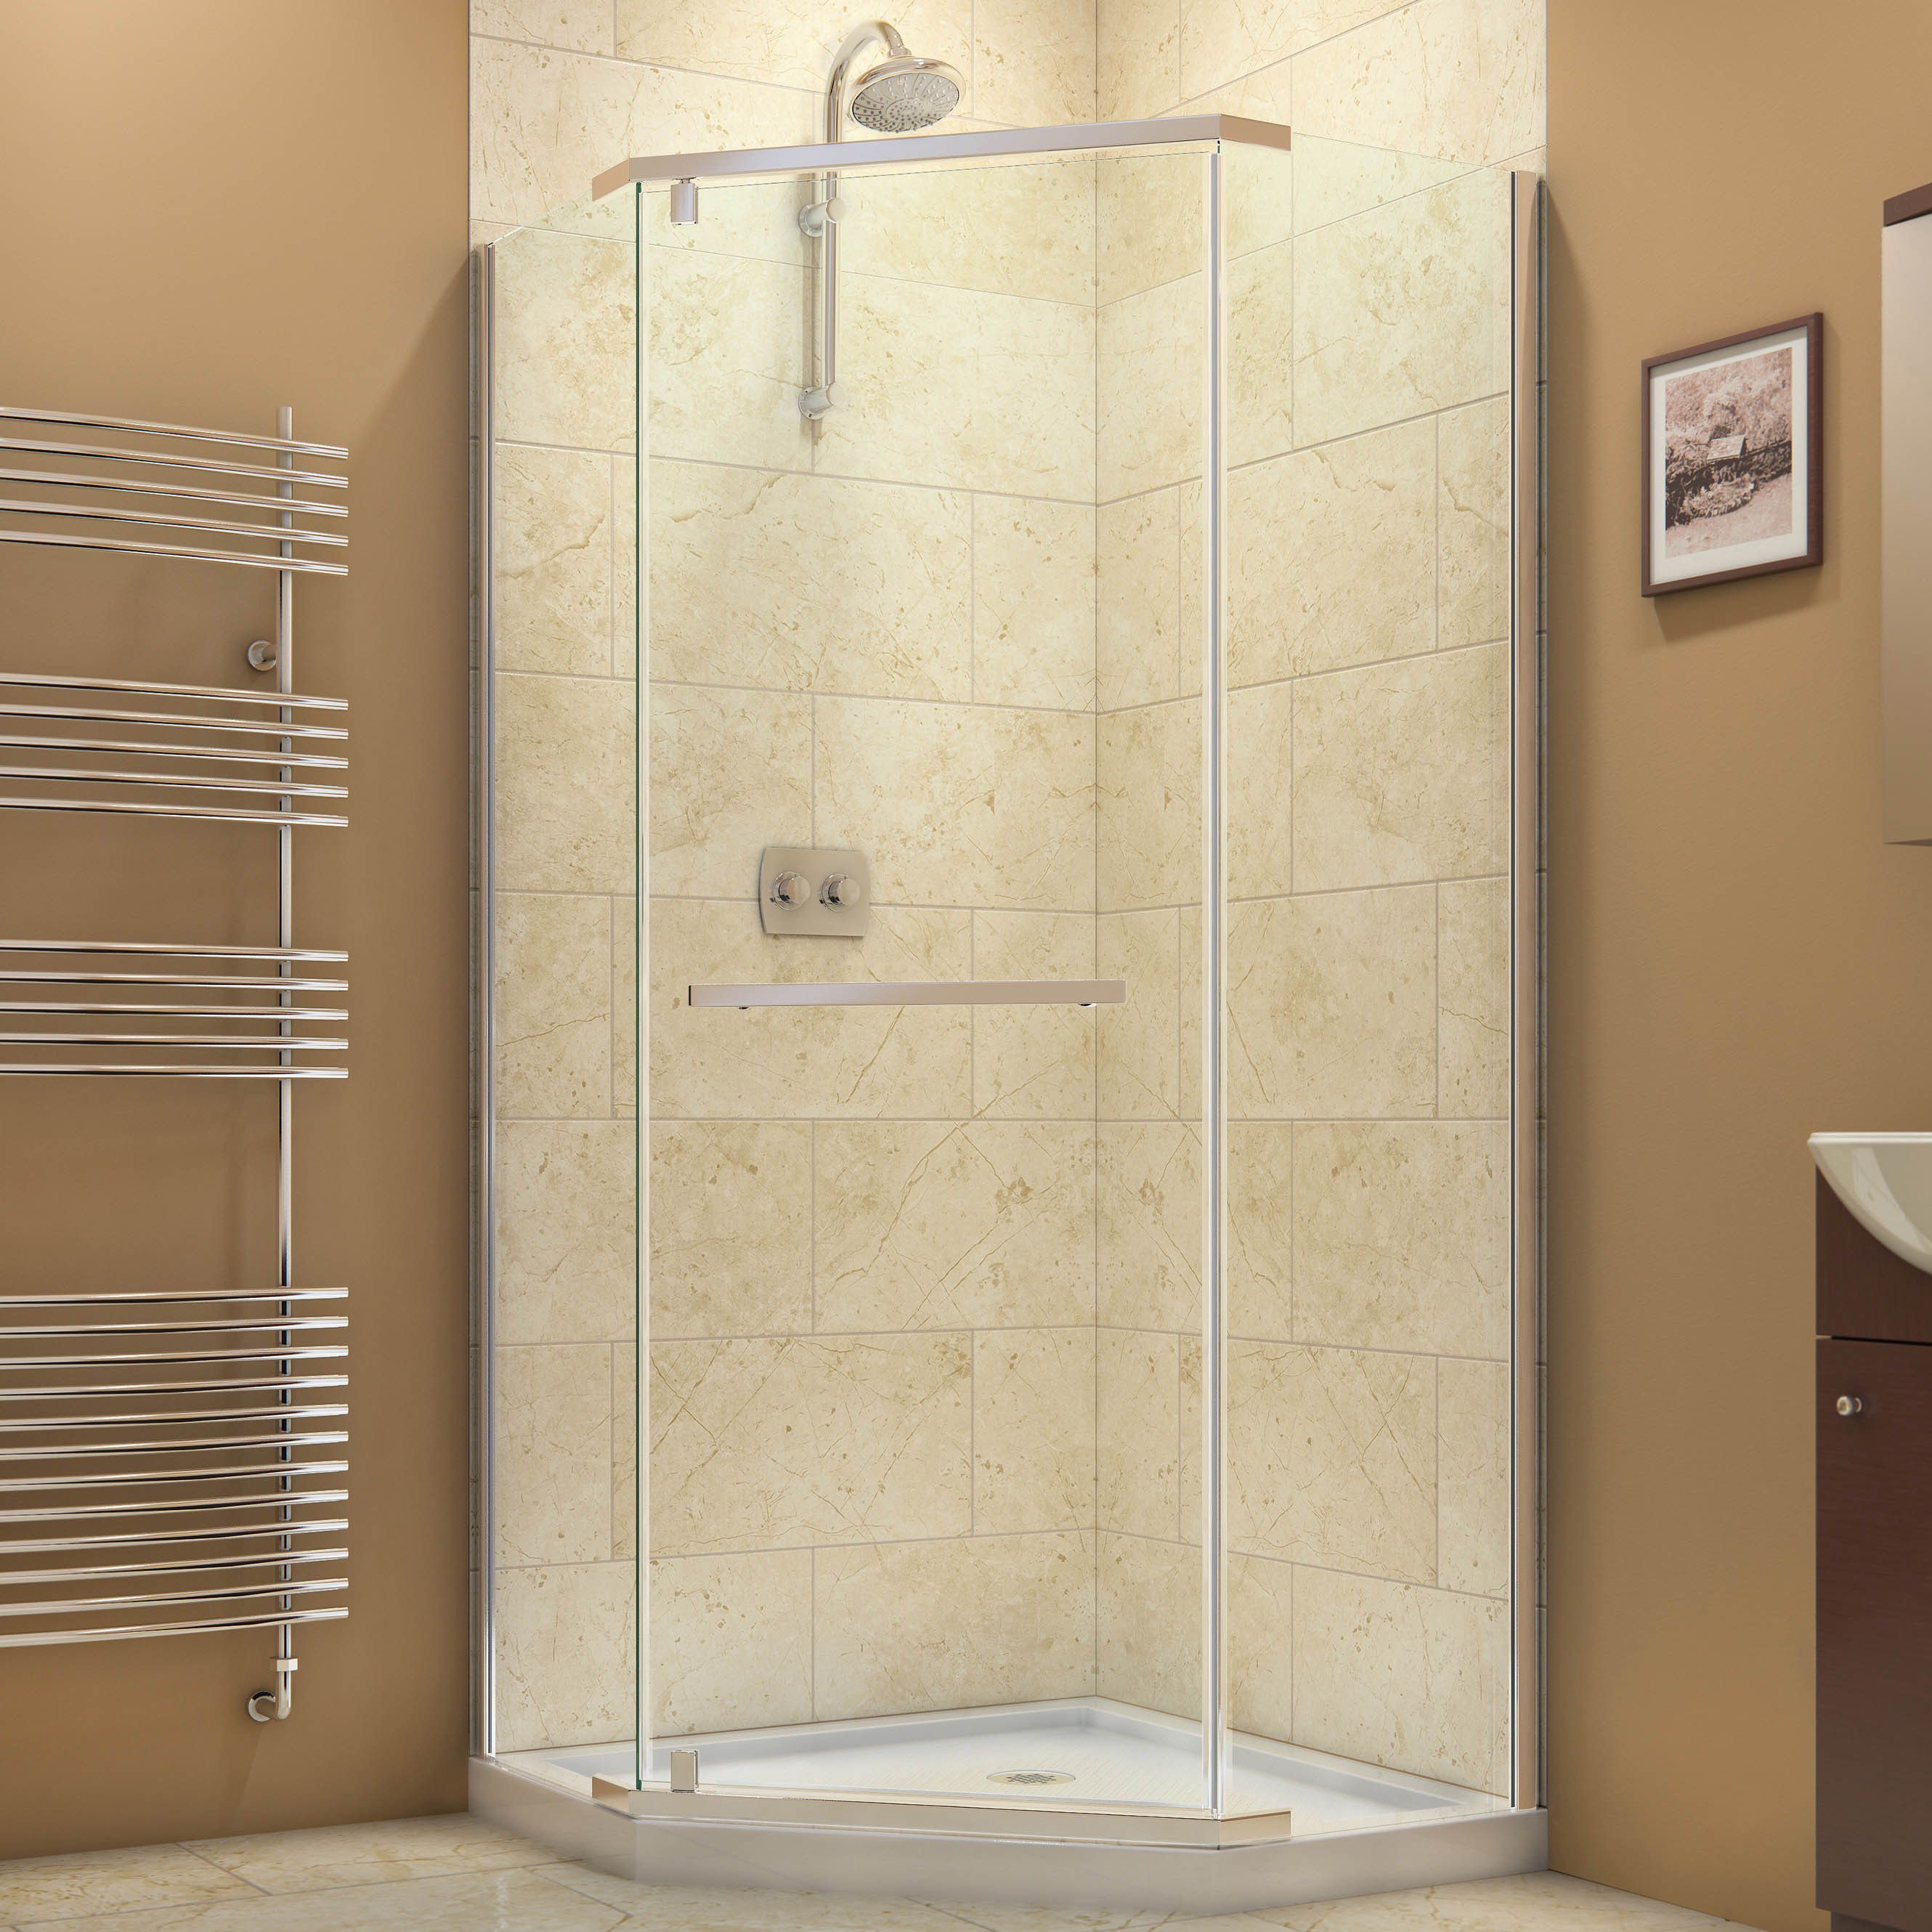 Instantly Update The Look Of Your Bathroom When You Install This